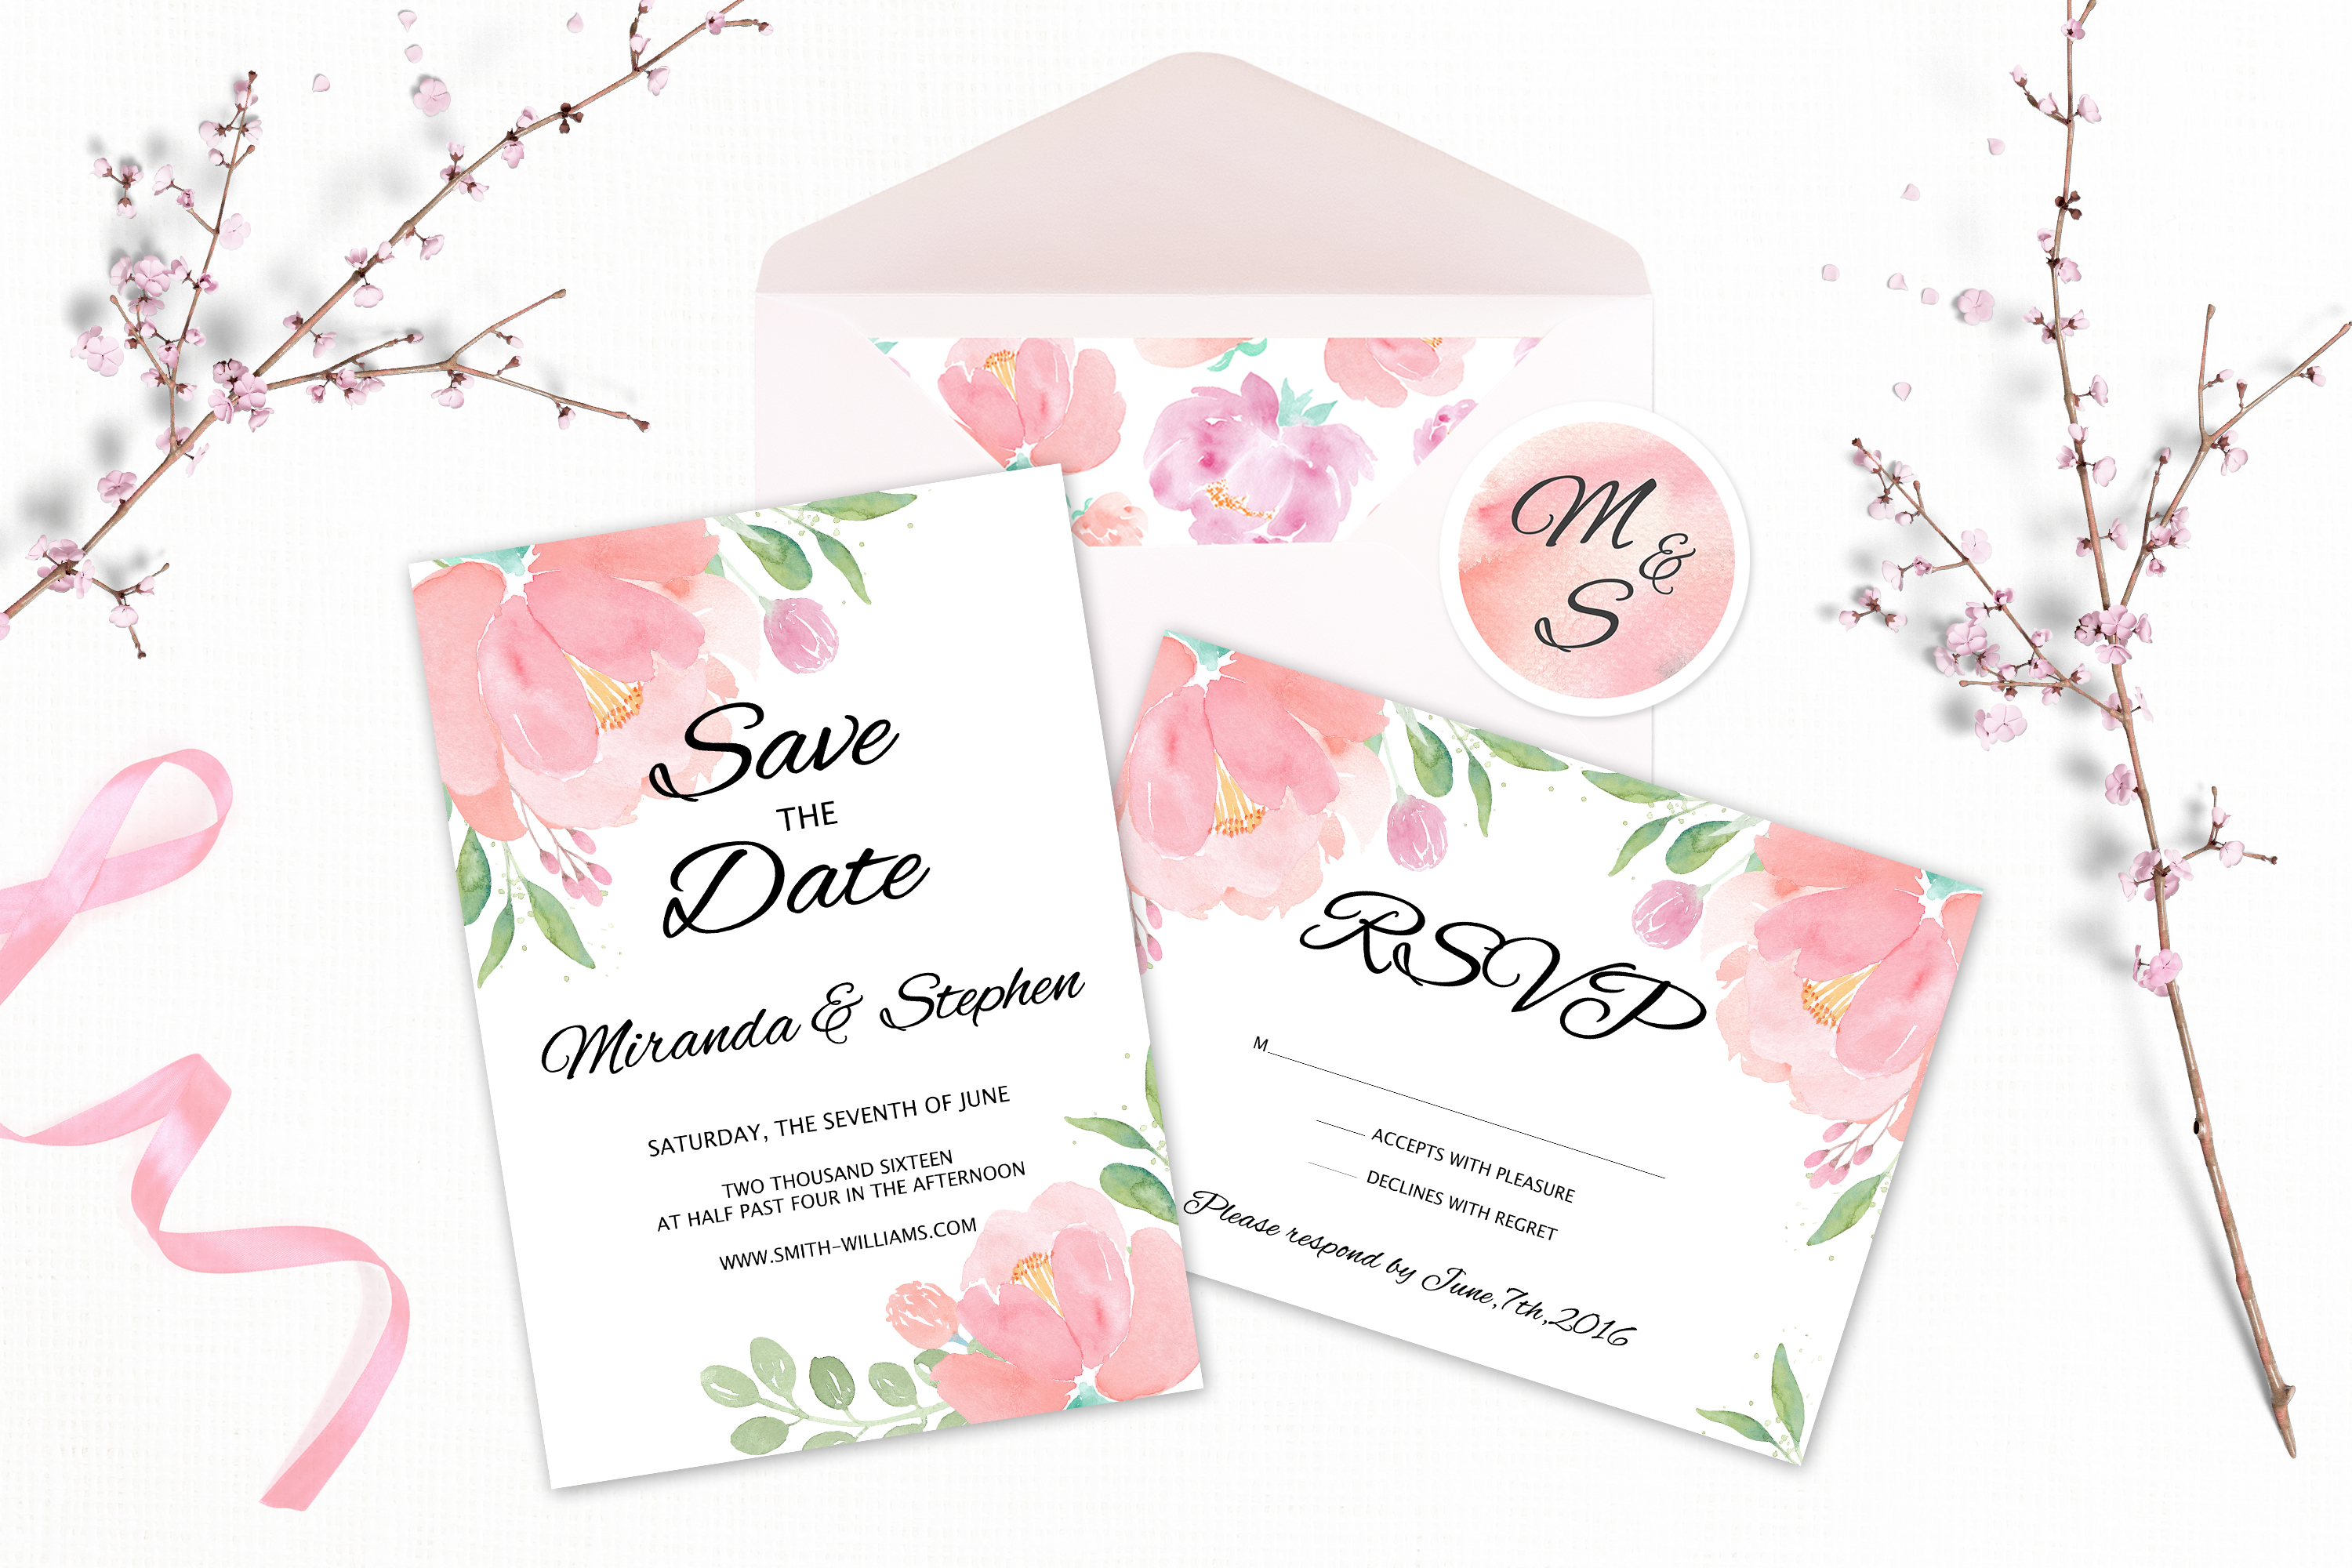 Watercolor Wedding Clipart. Flowers & Textures example image 5